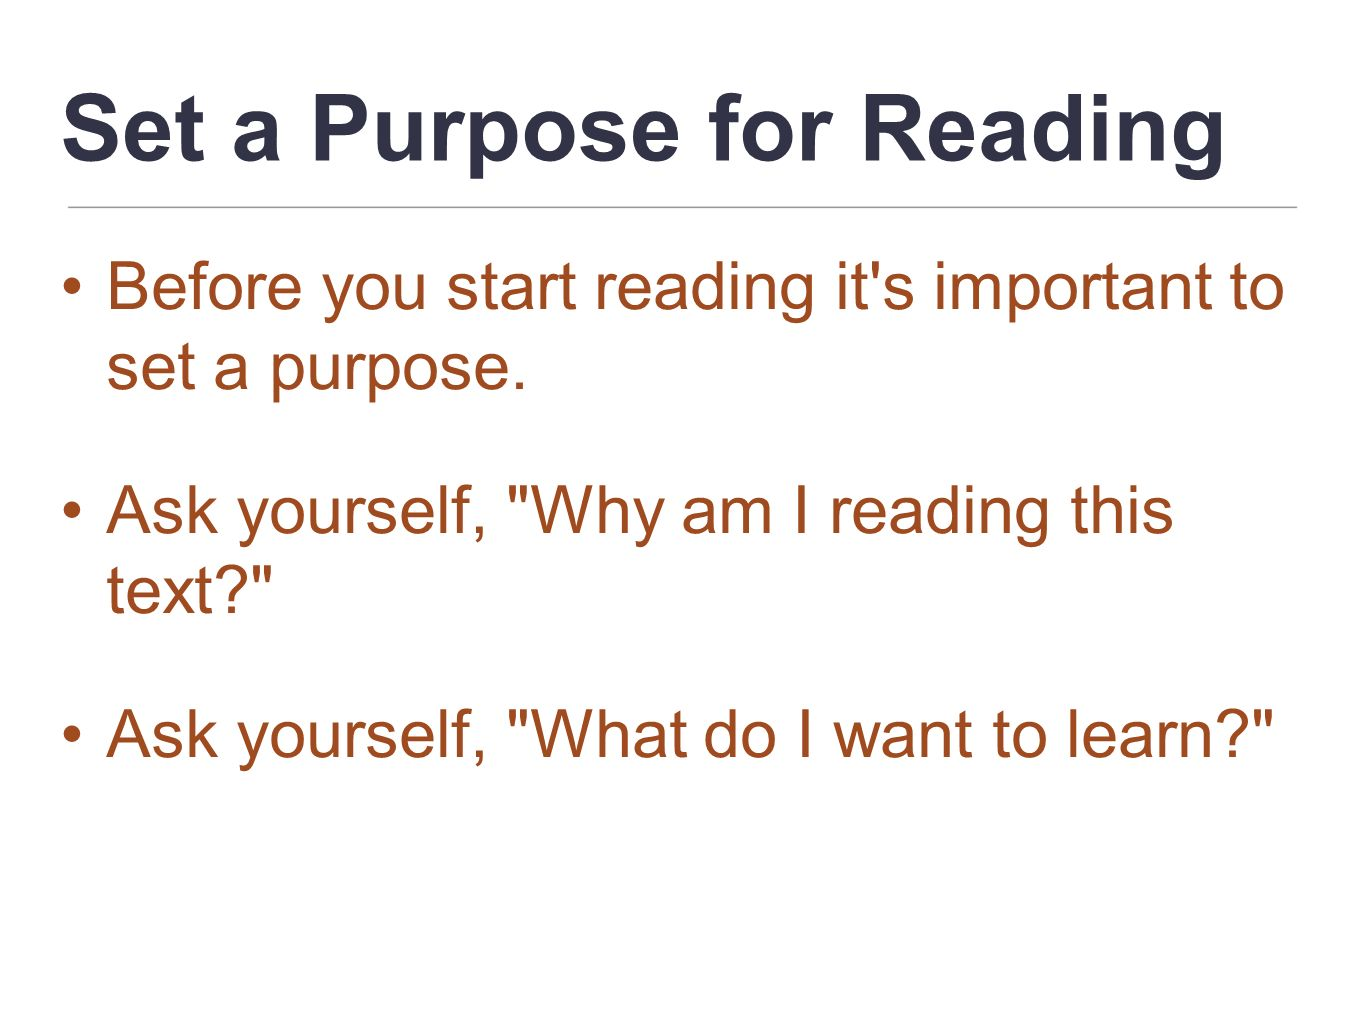 Set a Purpose for Reading